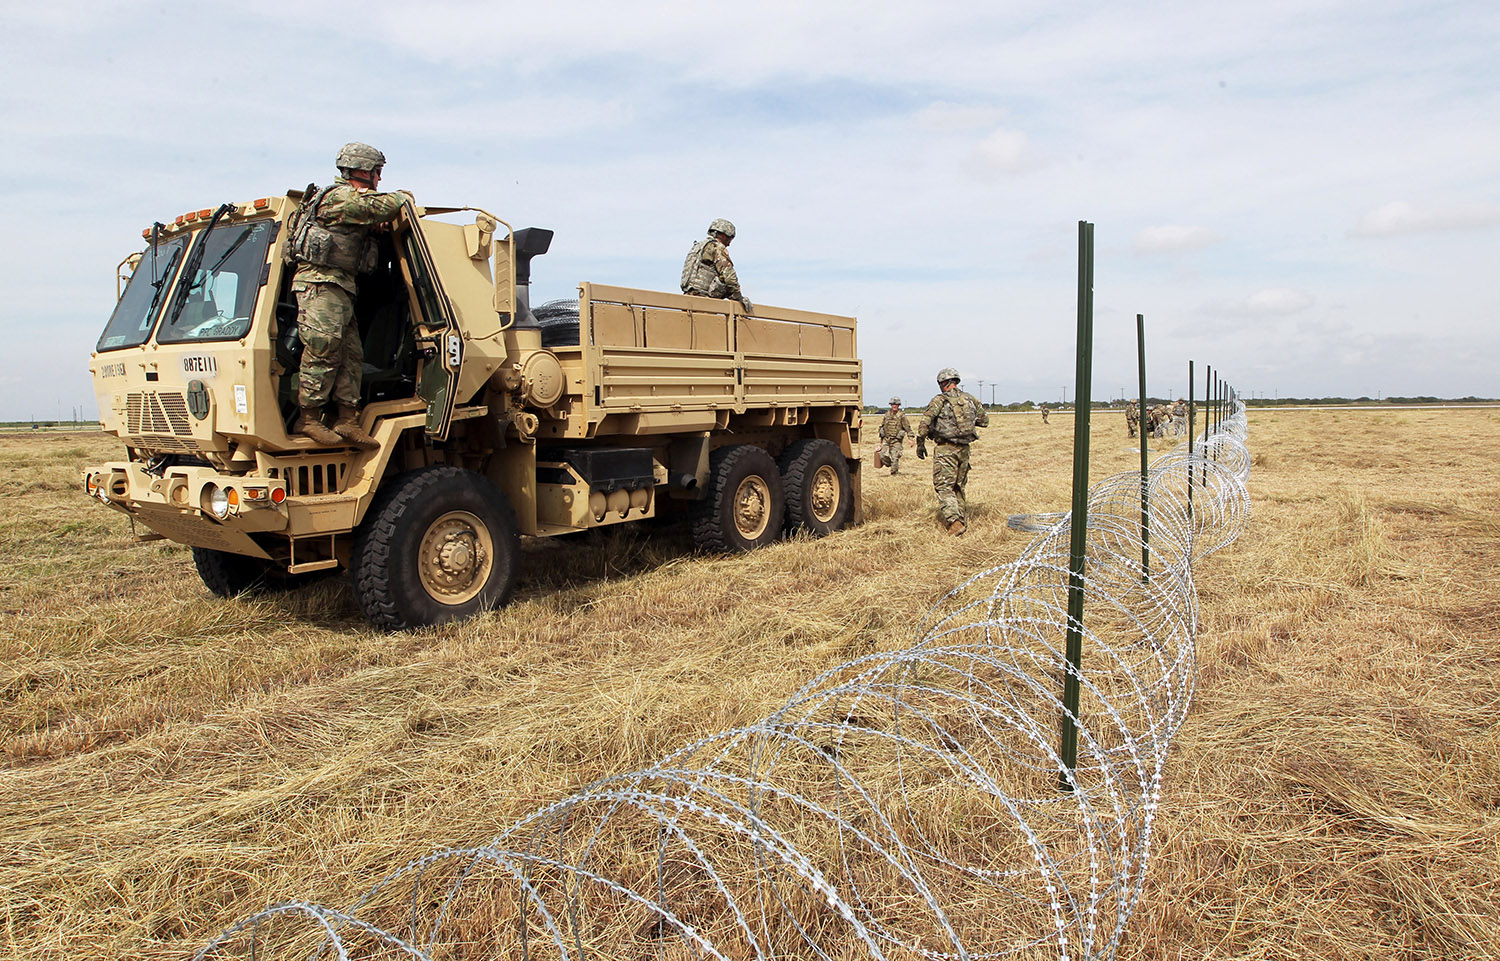 U.S. Army soldiers from Ft. Riley, Kansas, put up razor wire fence for an encampment to be used by the military near the U.S. Mexico border in Donna, Texas, U.S., November 4, 2018. REUTERS/Delcia Lopez